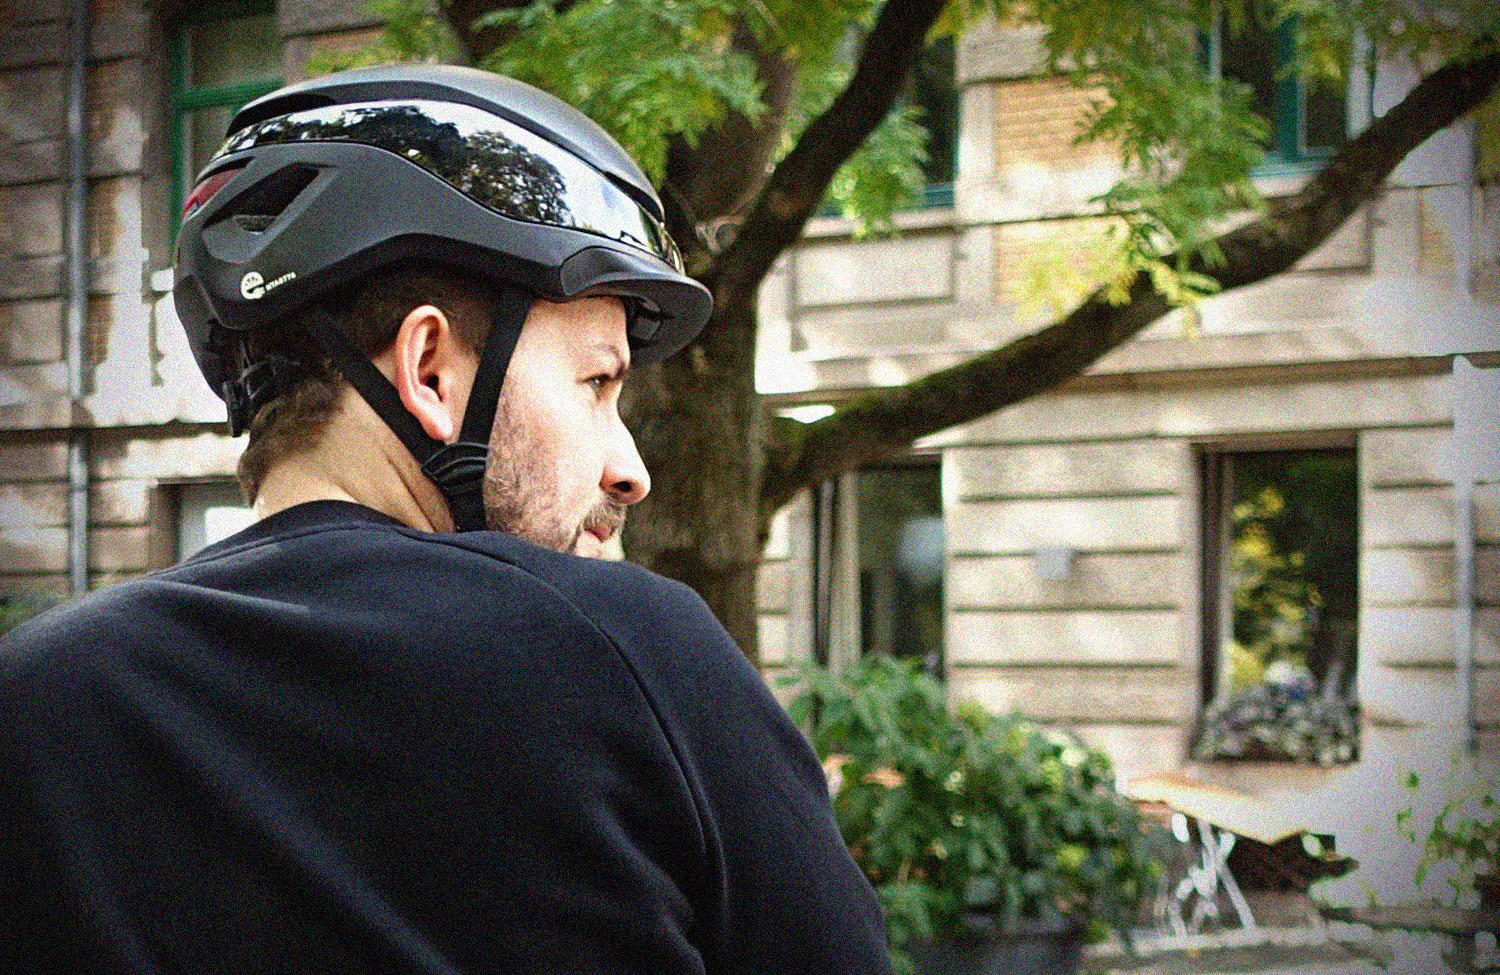 In the check: KED's urban cycling helmet Mitro UE-1